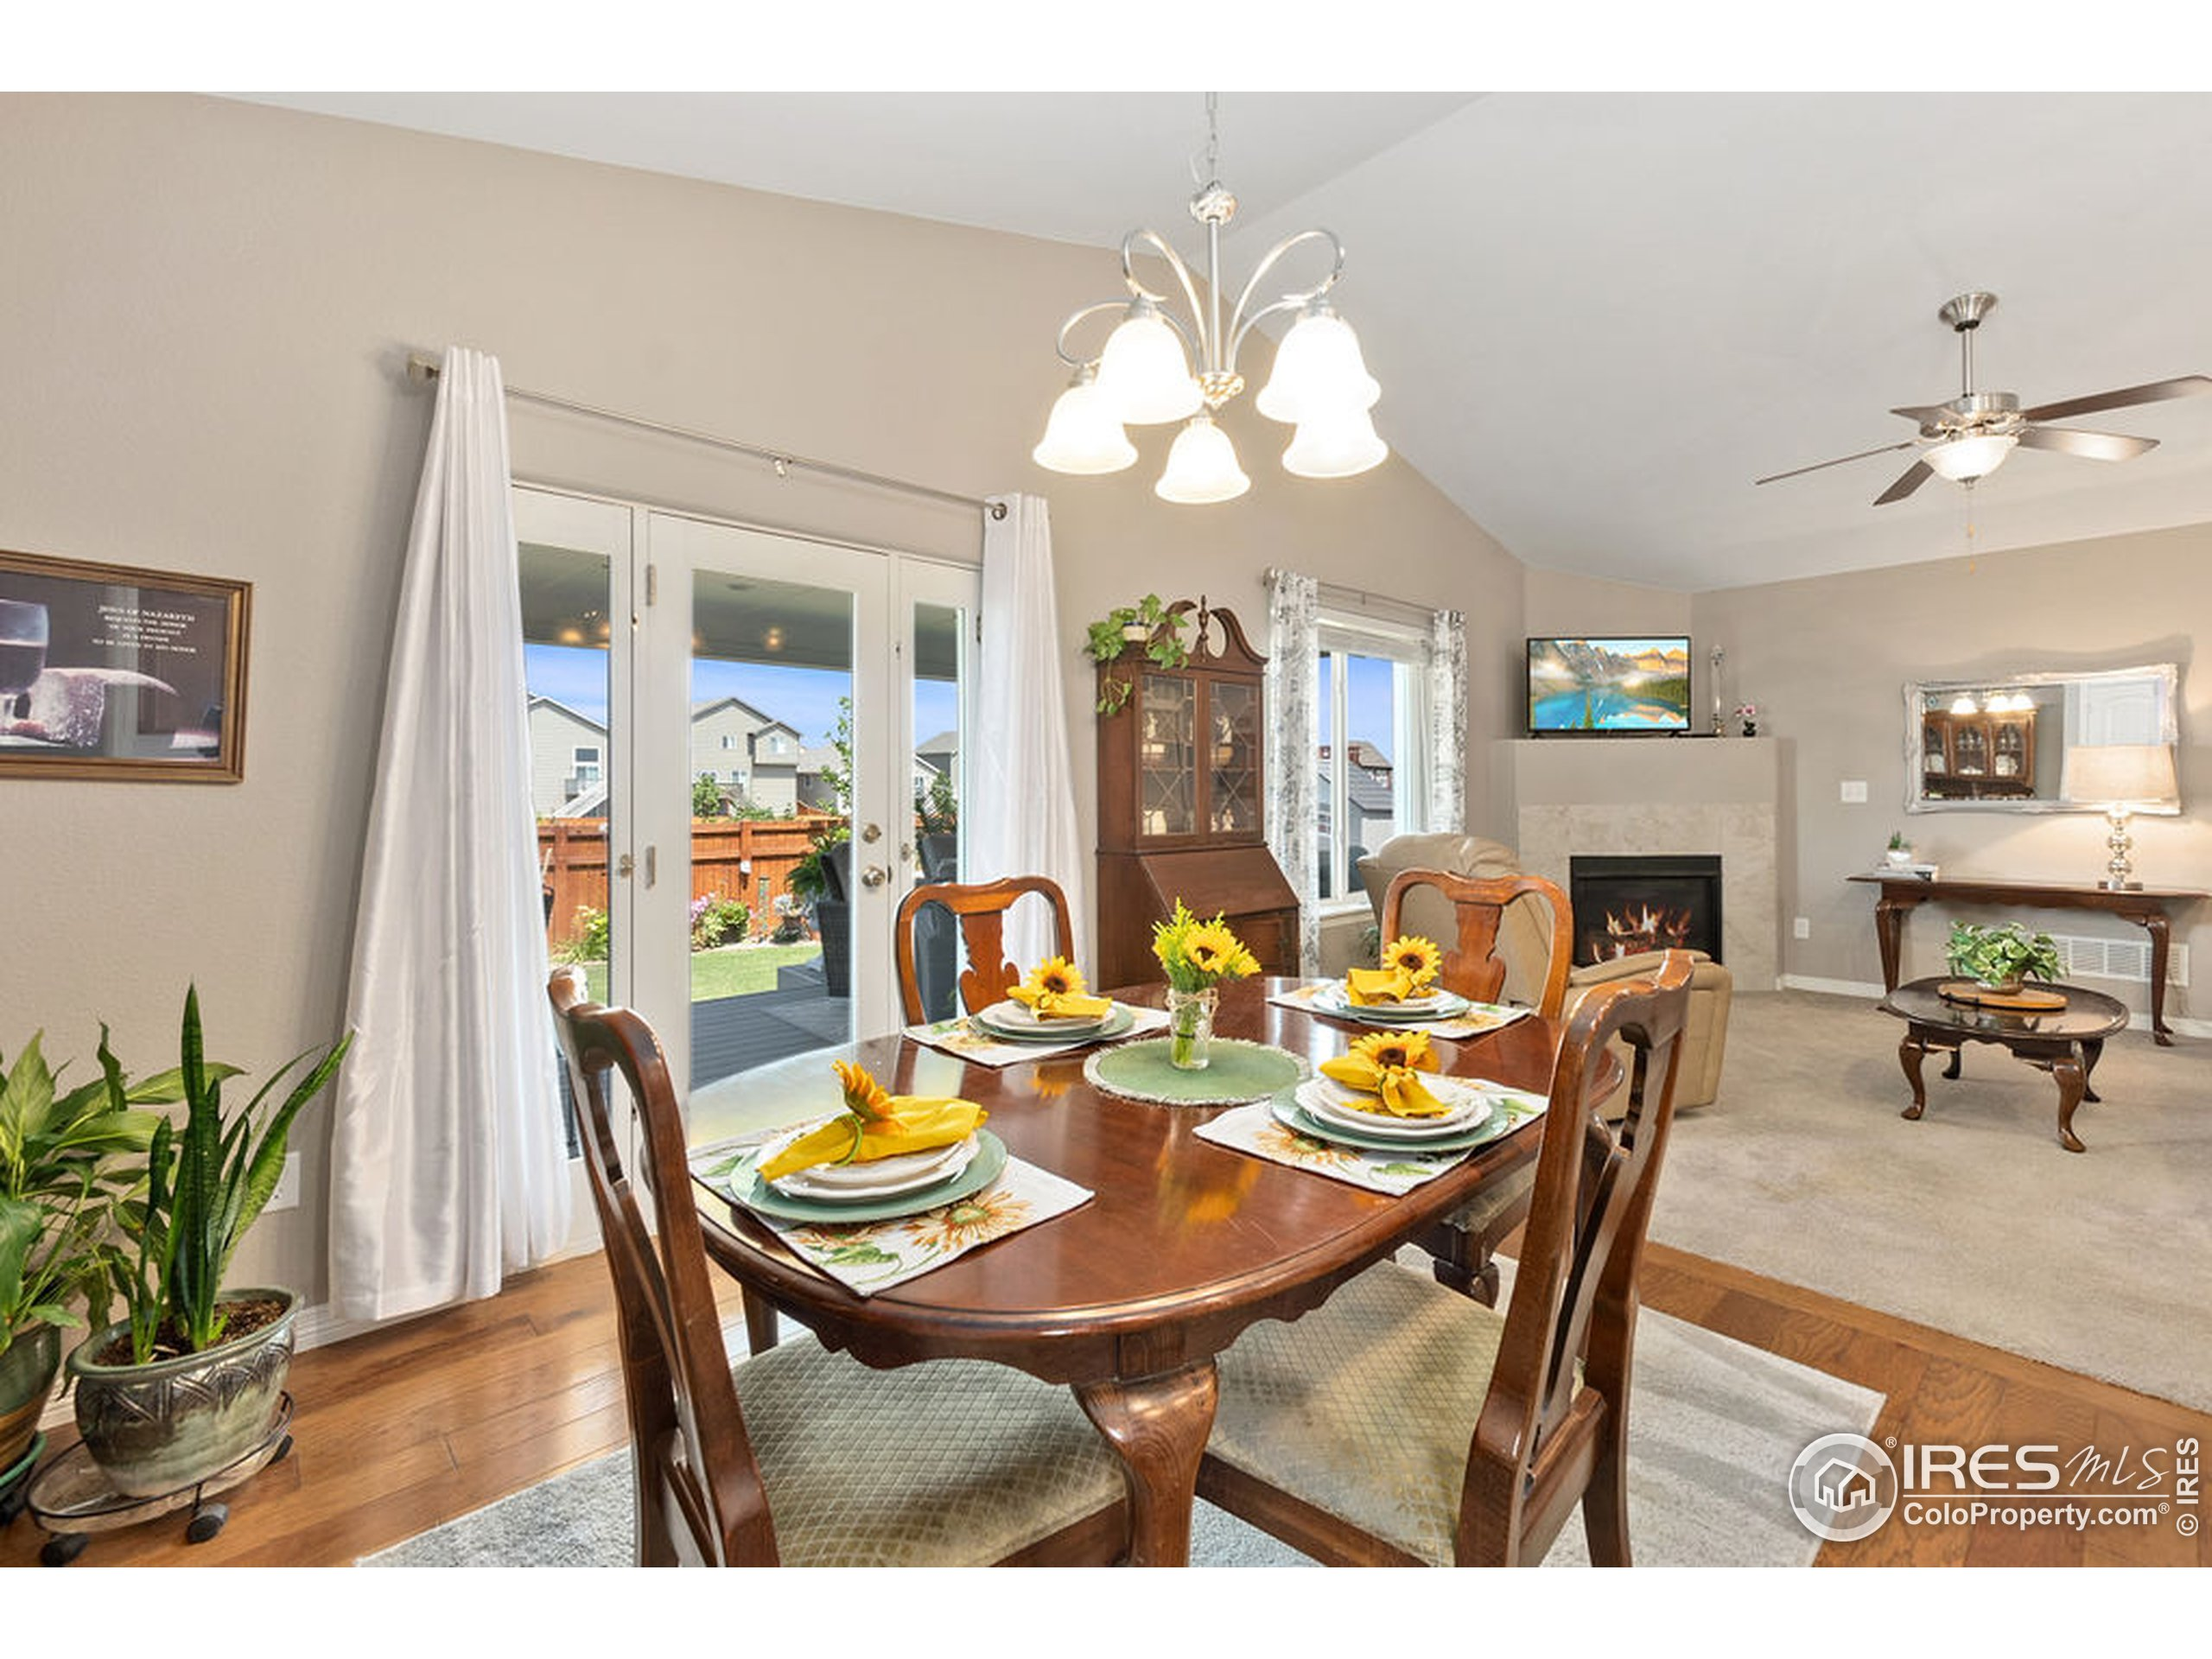 Dining area open to living room and has views and access to covered backyard deck